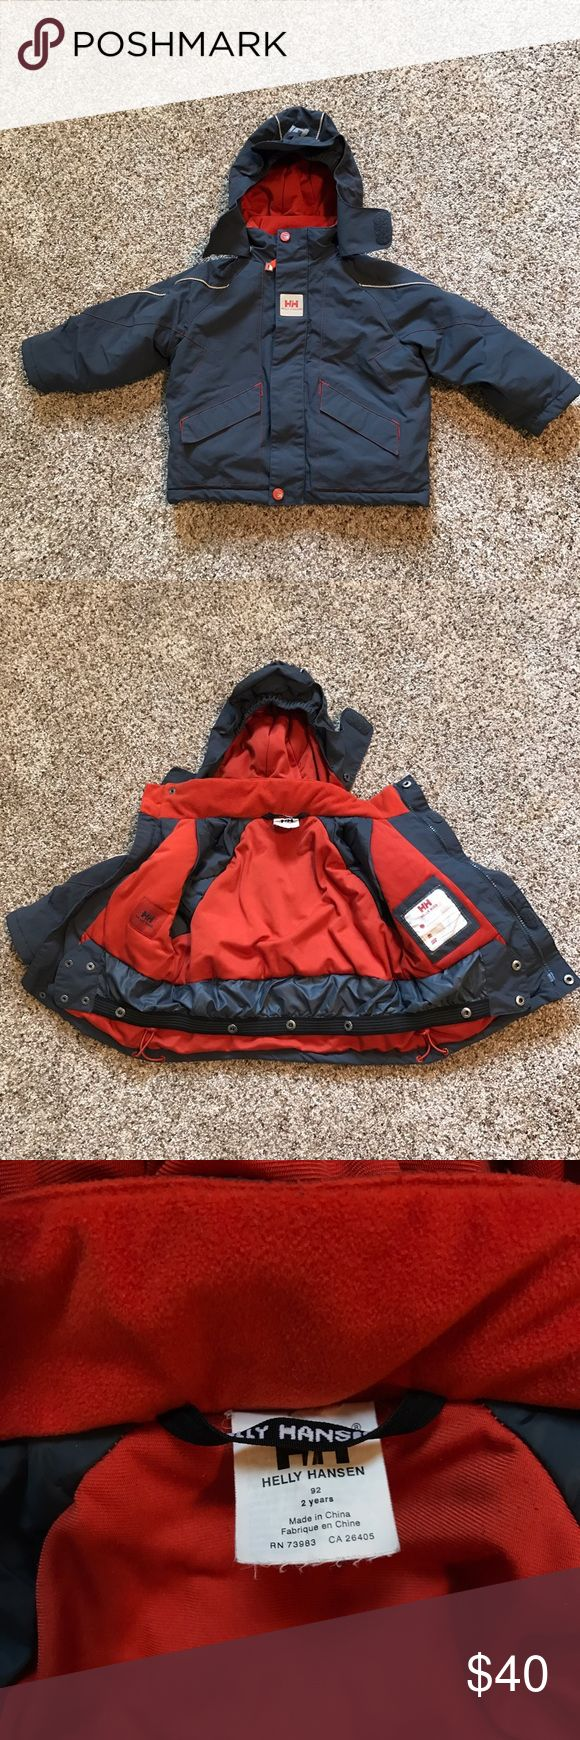 Helly Hansen Grey Orange Snowboard Jacket Size 2T Helly Hansen Grey and Burnt Orange Snowboard Jacket. Has a snapping snowskirt inside, detachable hood, all zippers and snaps work great. Size 2T. Worn twice, looks like new. Helly Hansen Jackets & Coats Puffers